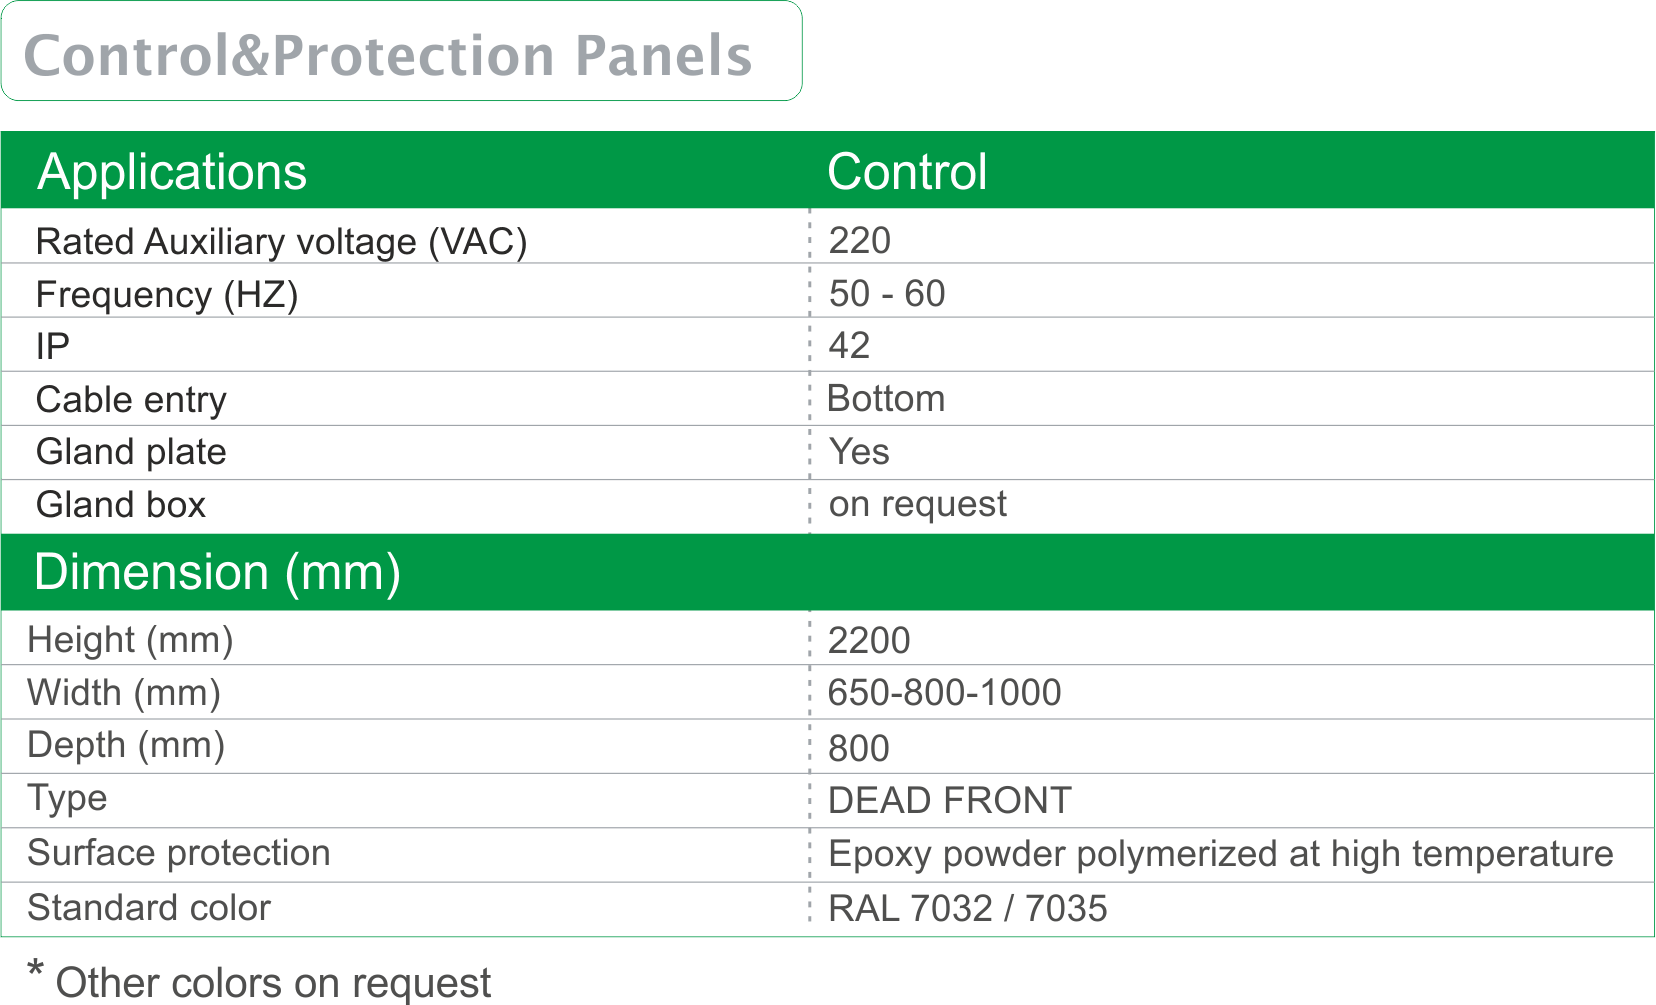 Control_Protection-Panels-Control